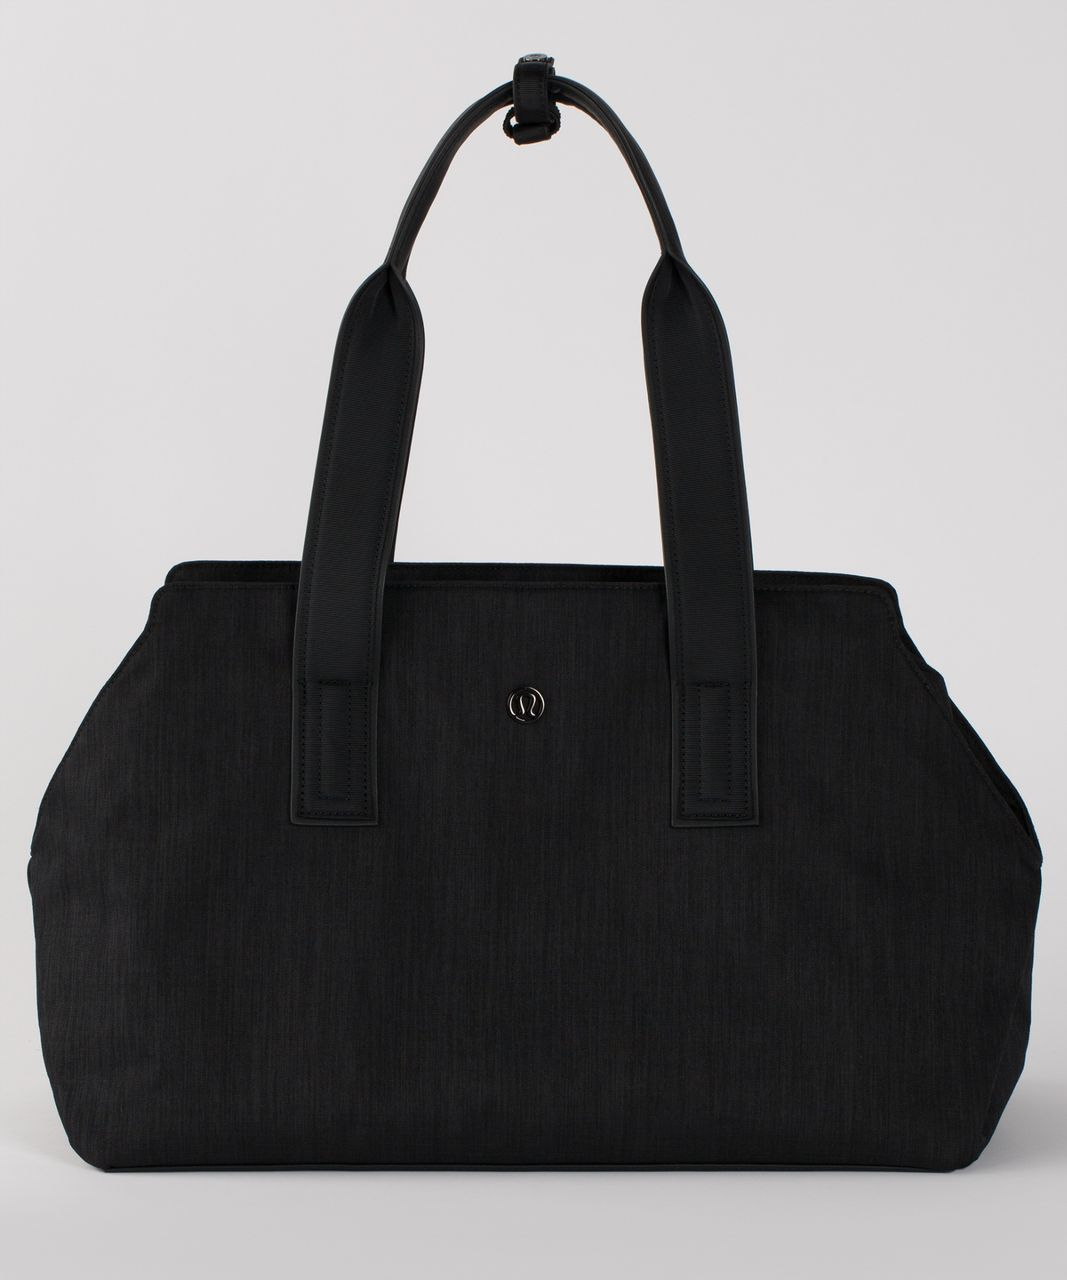 b78425df3a Lululemon Go Getter Bag (Heat) - Black | Casual Office Style ...